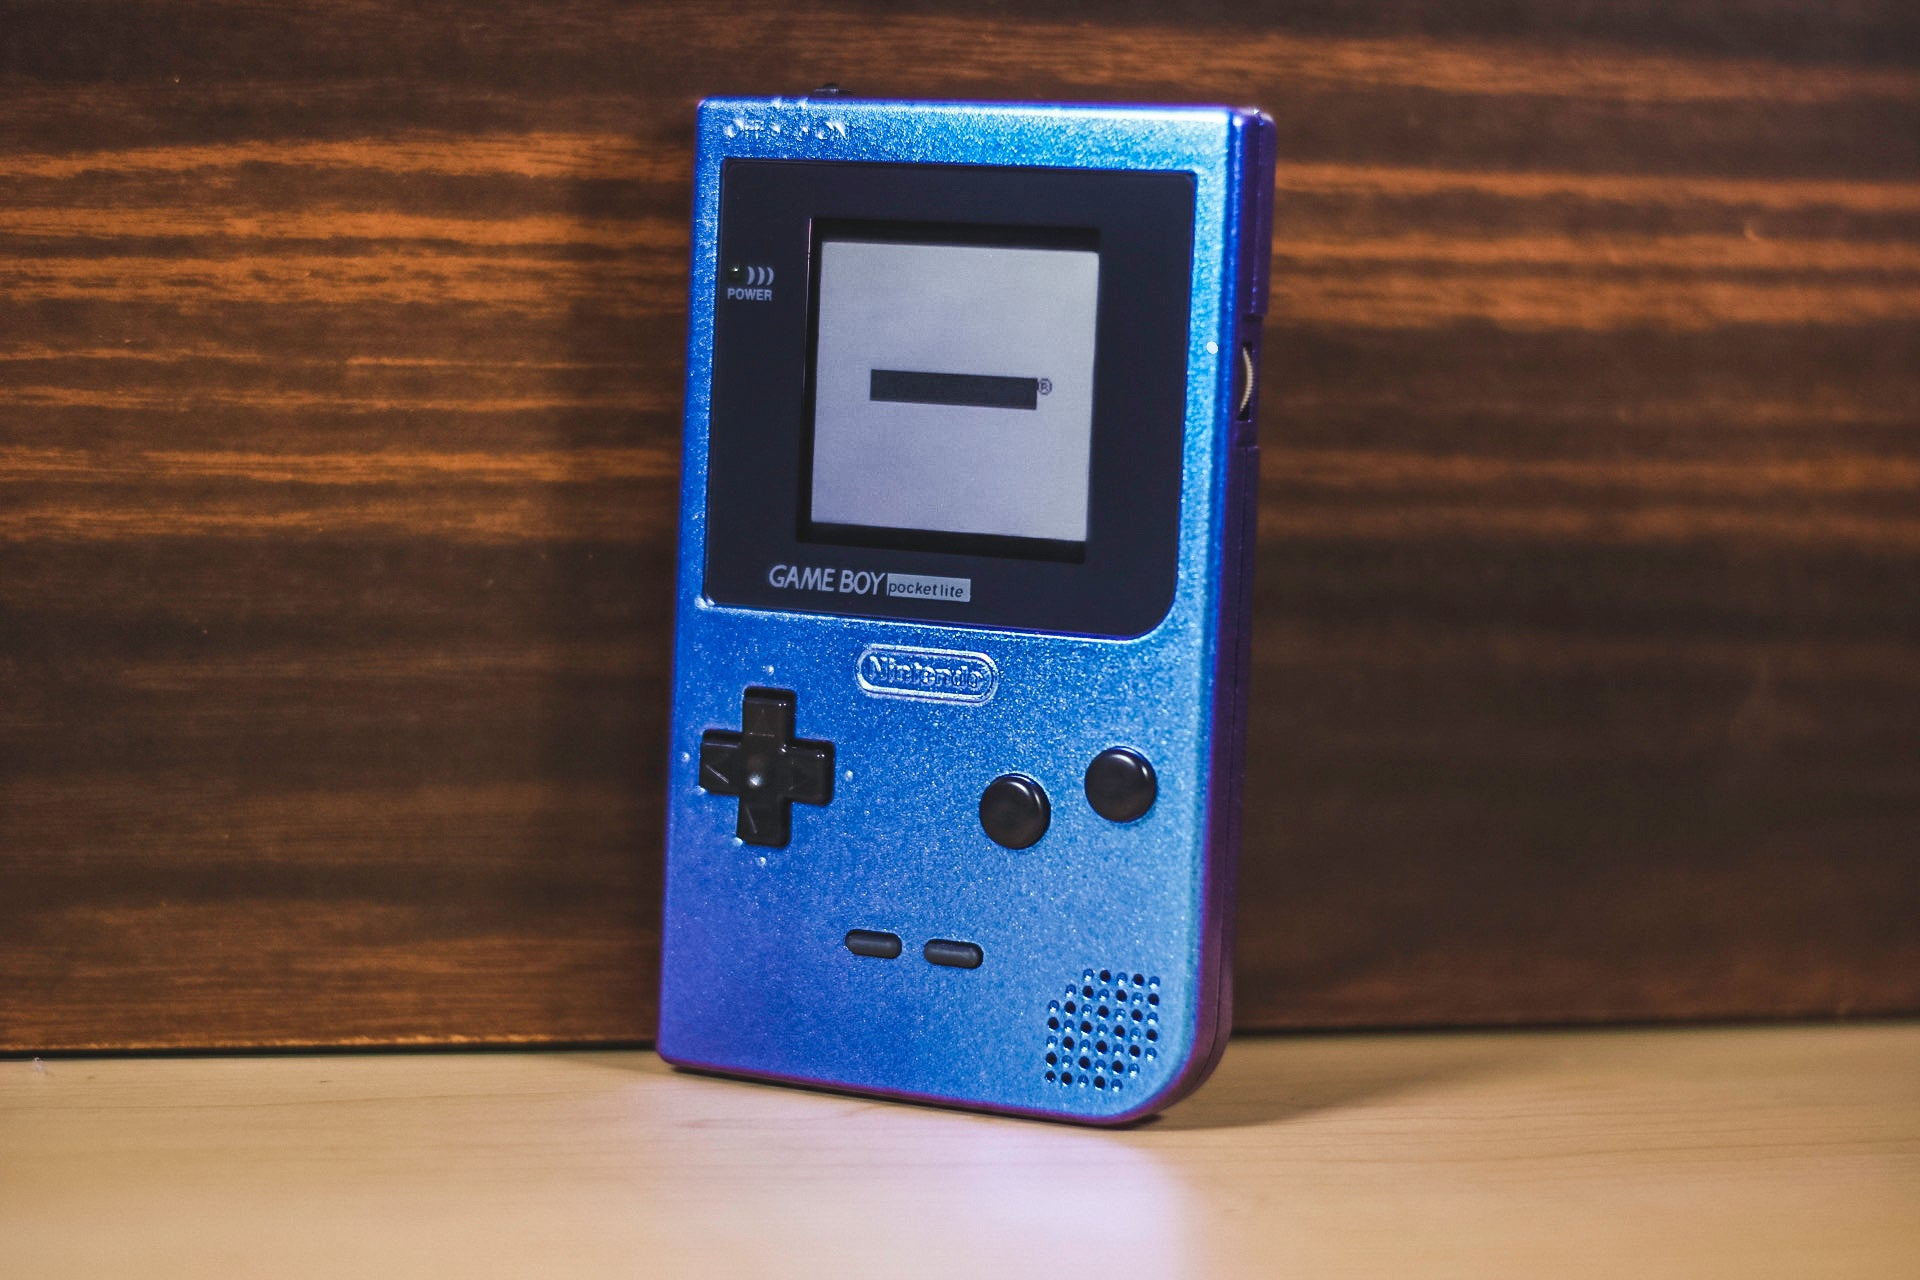 Modded GameBoy Pocket w/ TFT Display (Pearlescent Blue/Purple)